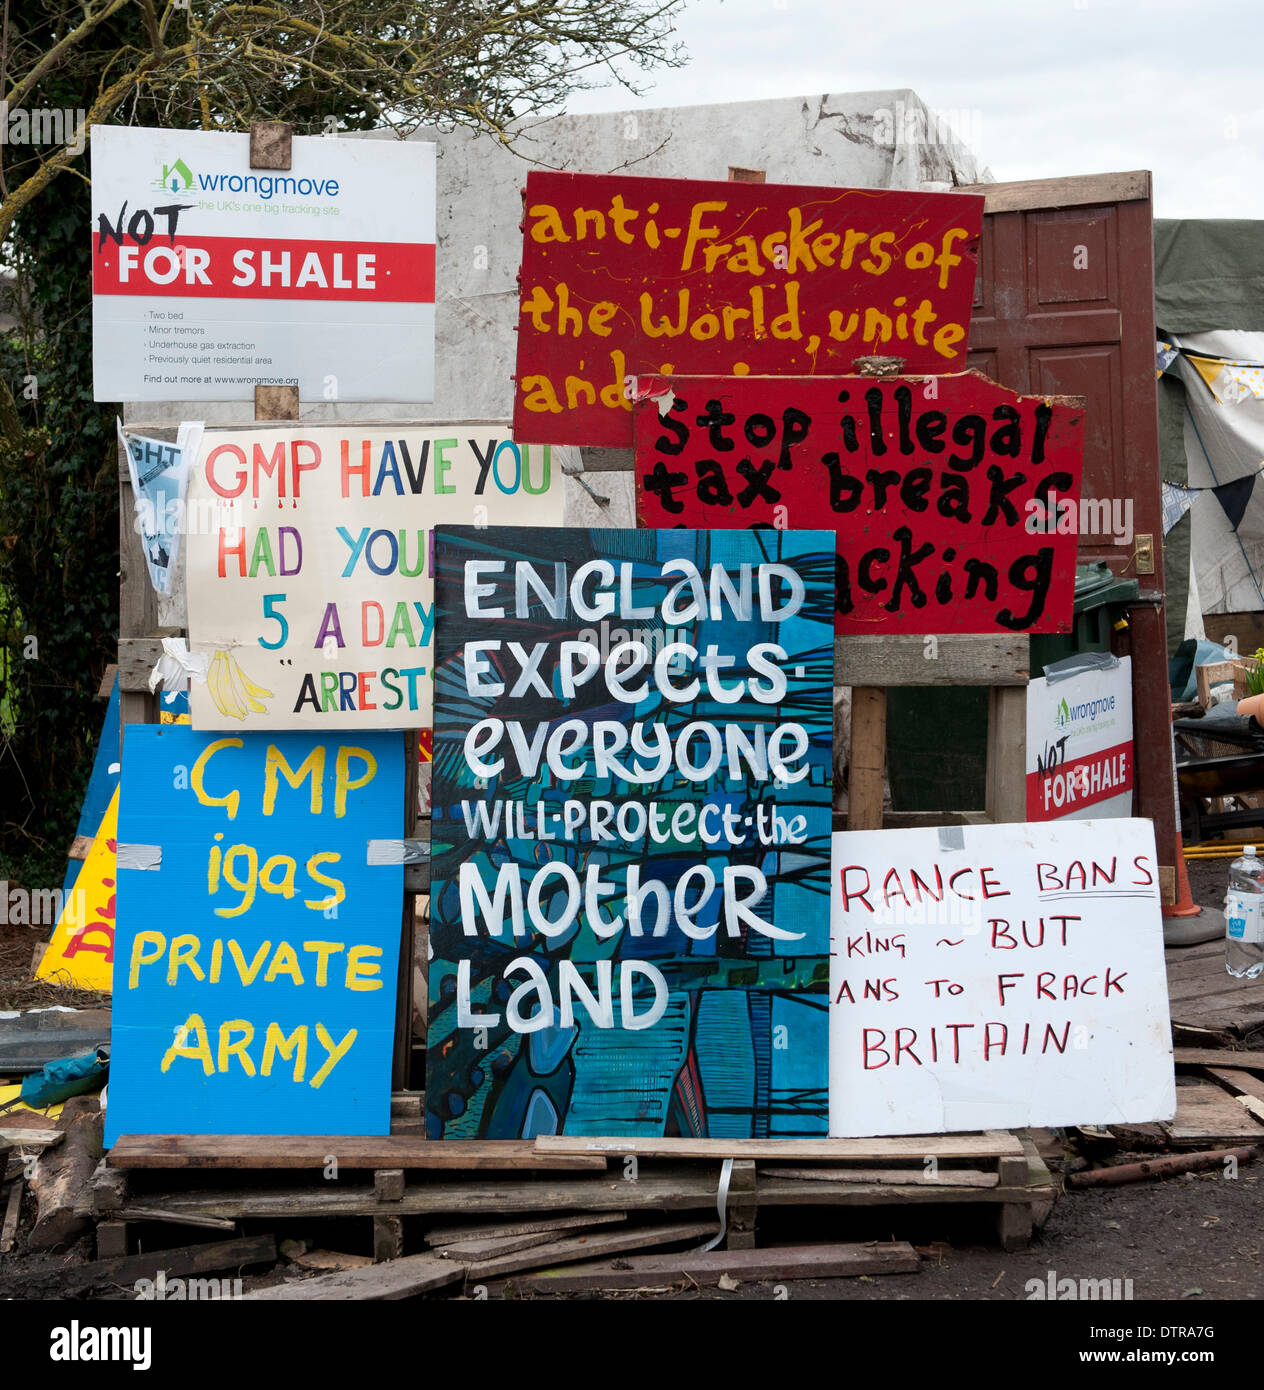 Barton Moss, Salford, UK. Sunday 23rd February 2014. A selection of placards at Barton Moss. An anti-fracking camp - Stock Image